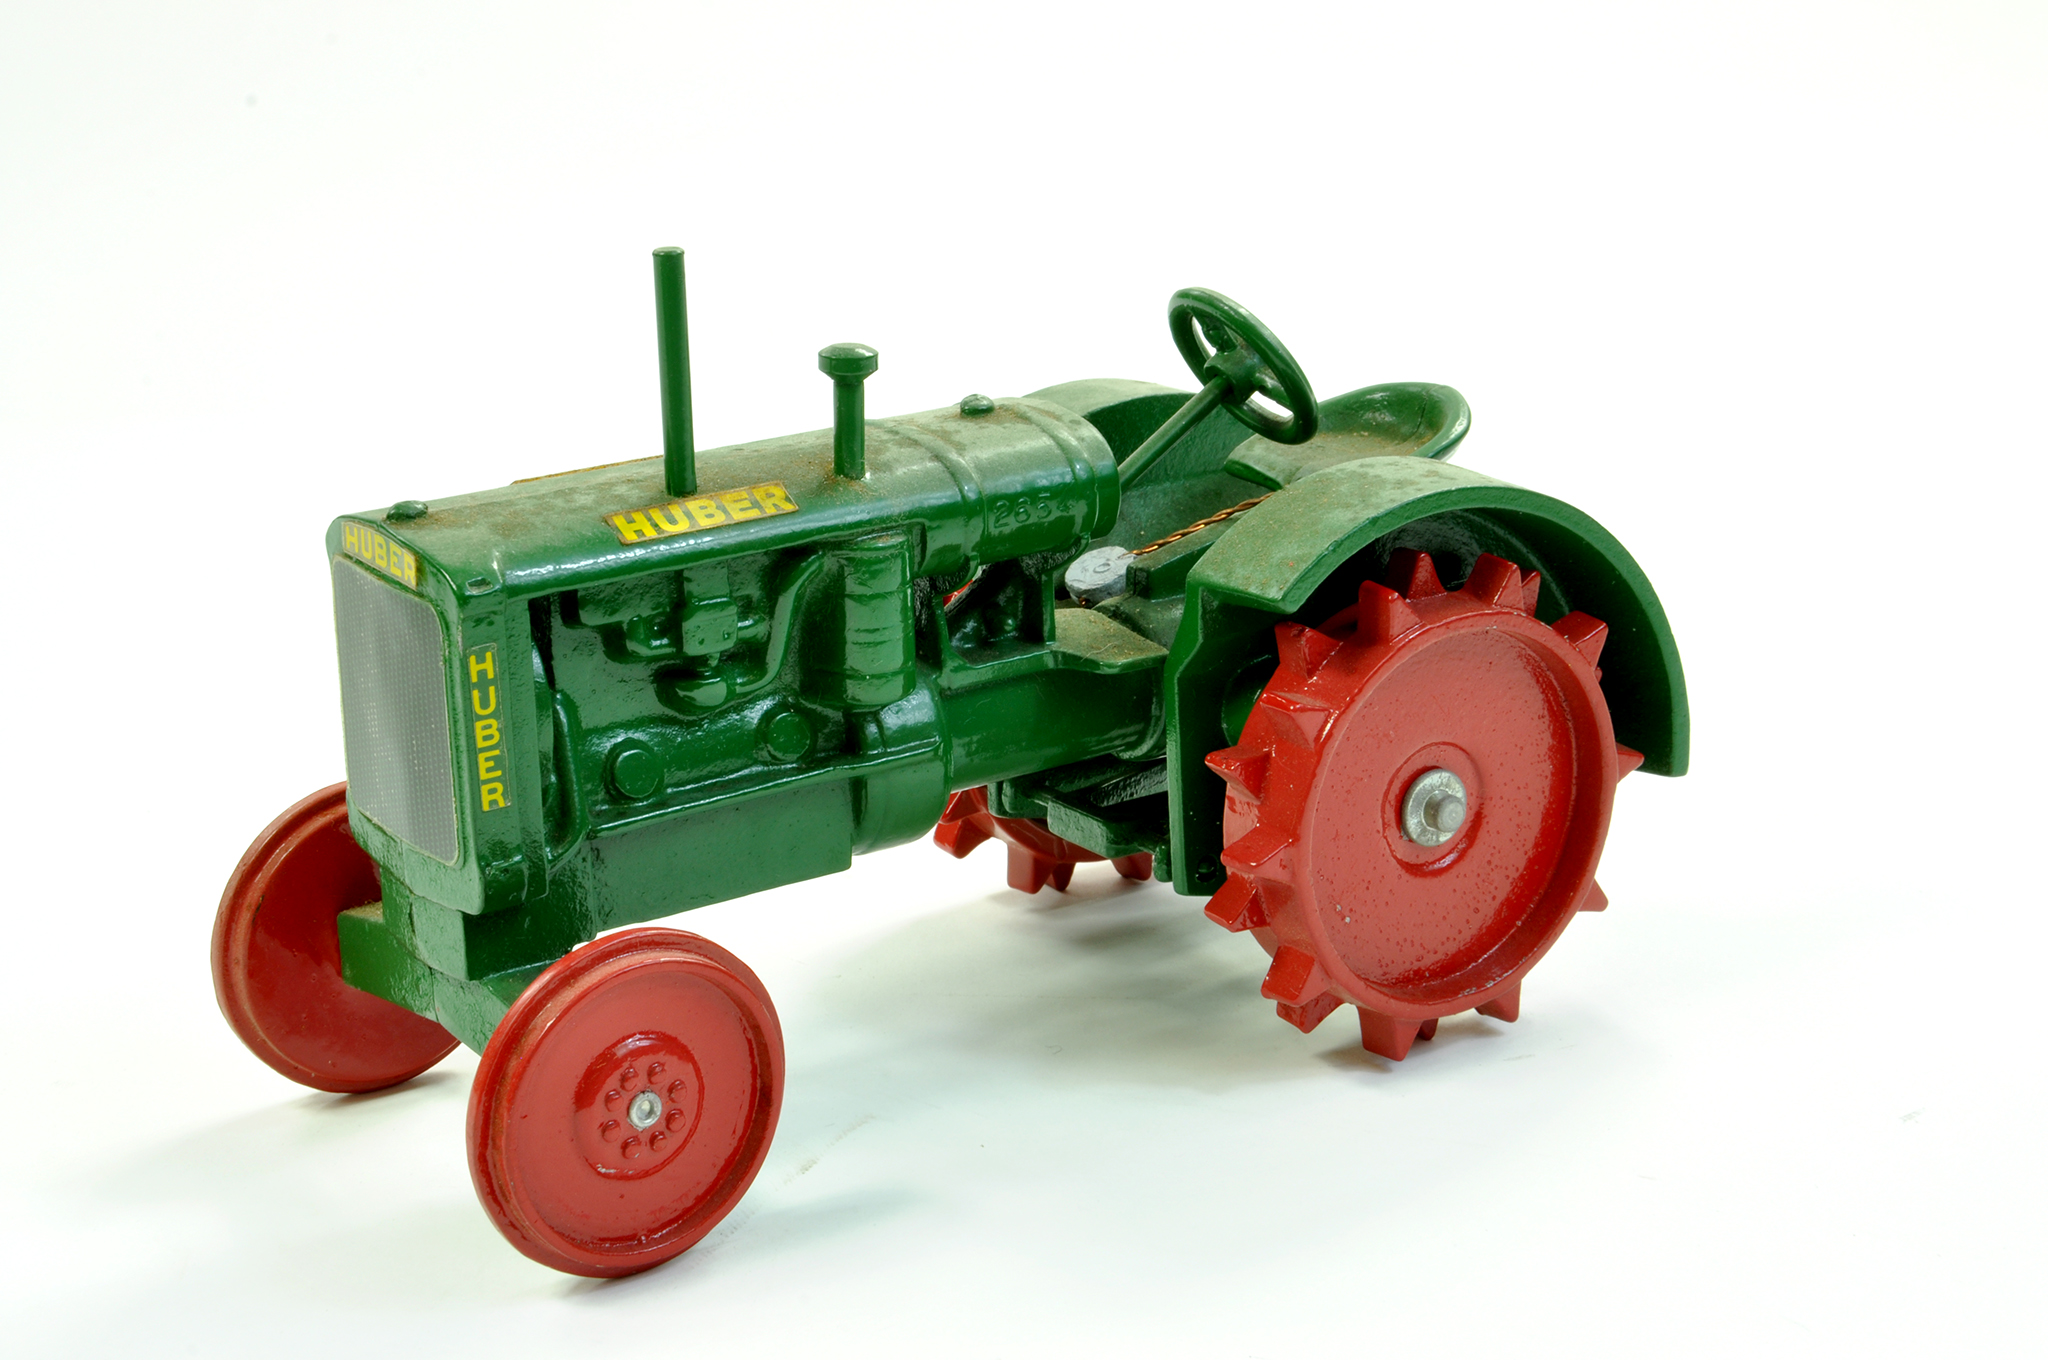 Lot 10 - Scale Models 1/16 diecast farm issue comprising Huber Vintage Tractor. A little dusty but